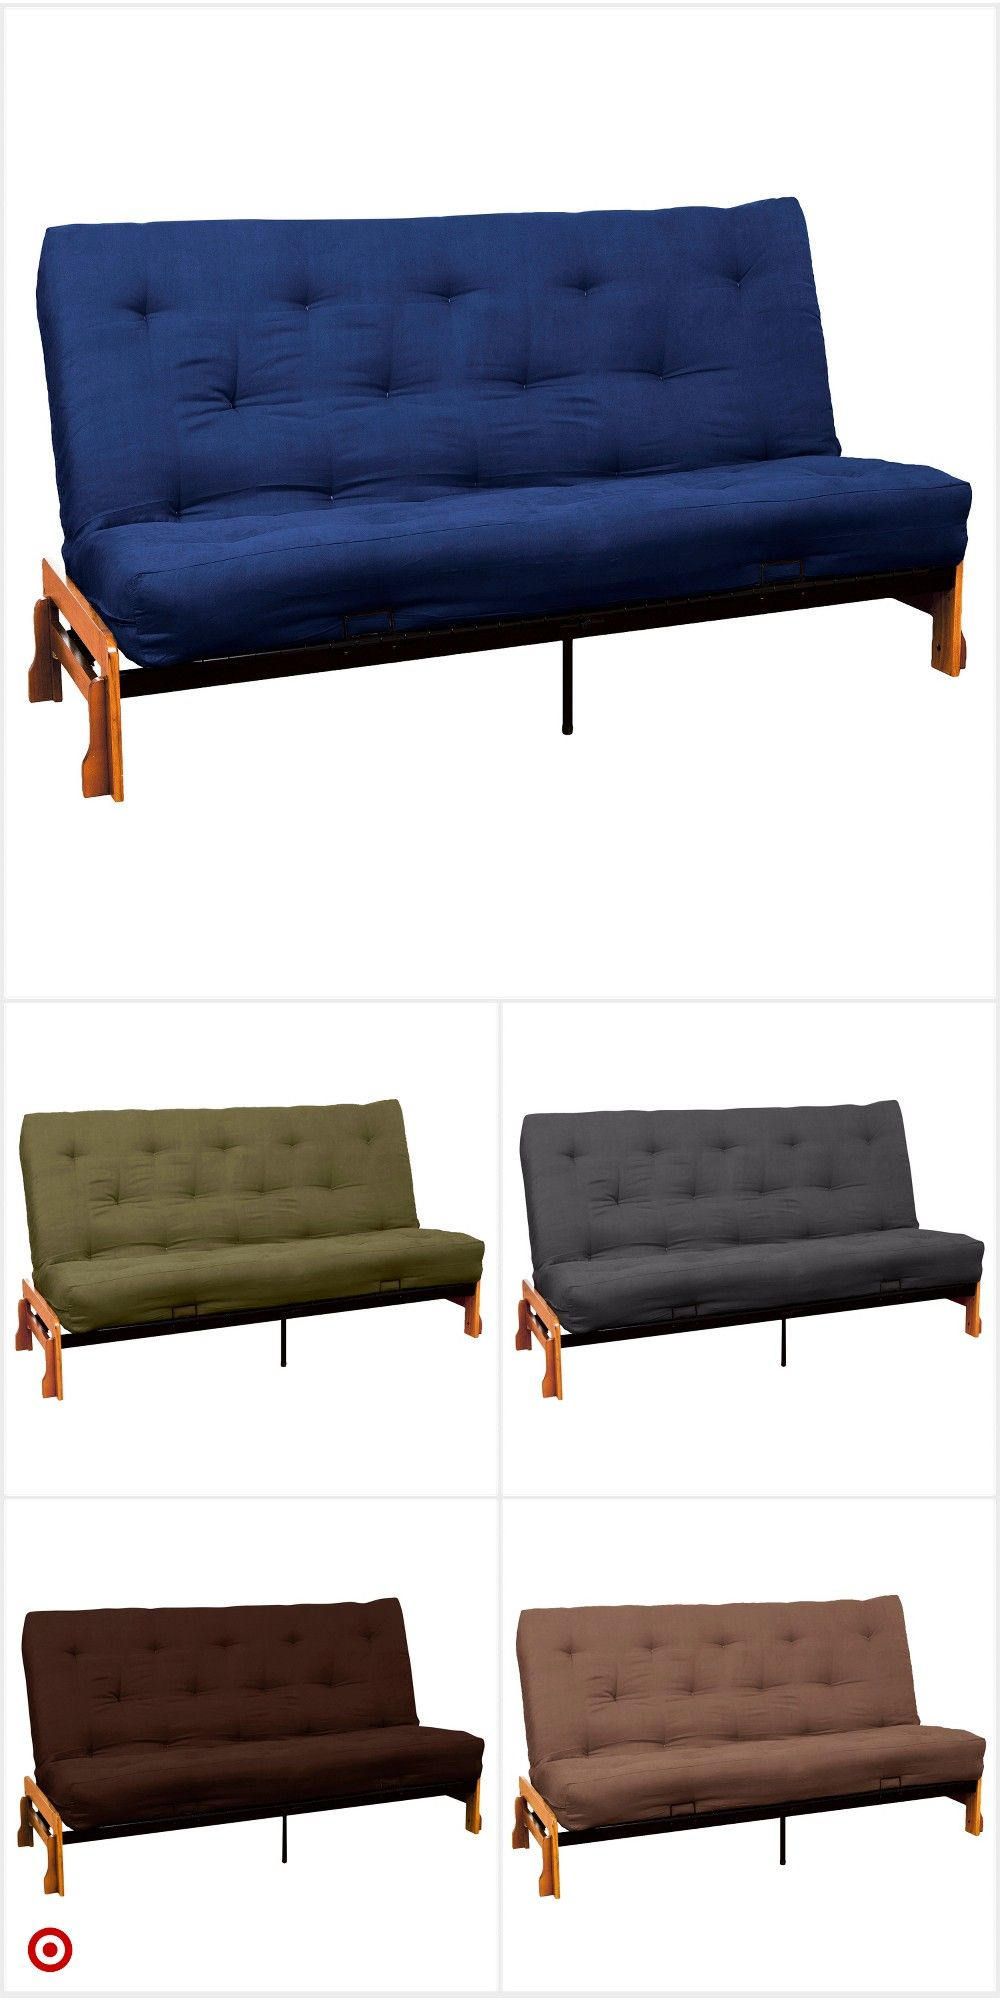 Target For Futon Mattress You Will Love At Great Low